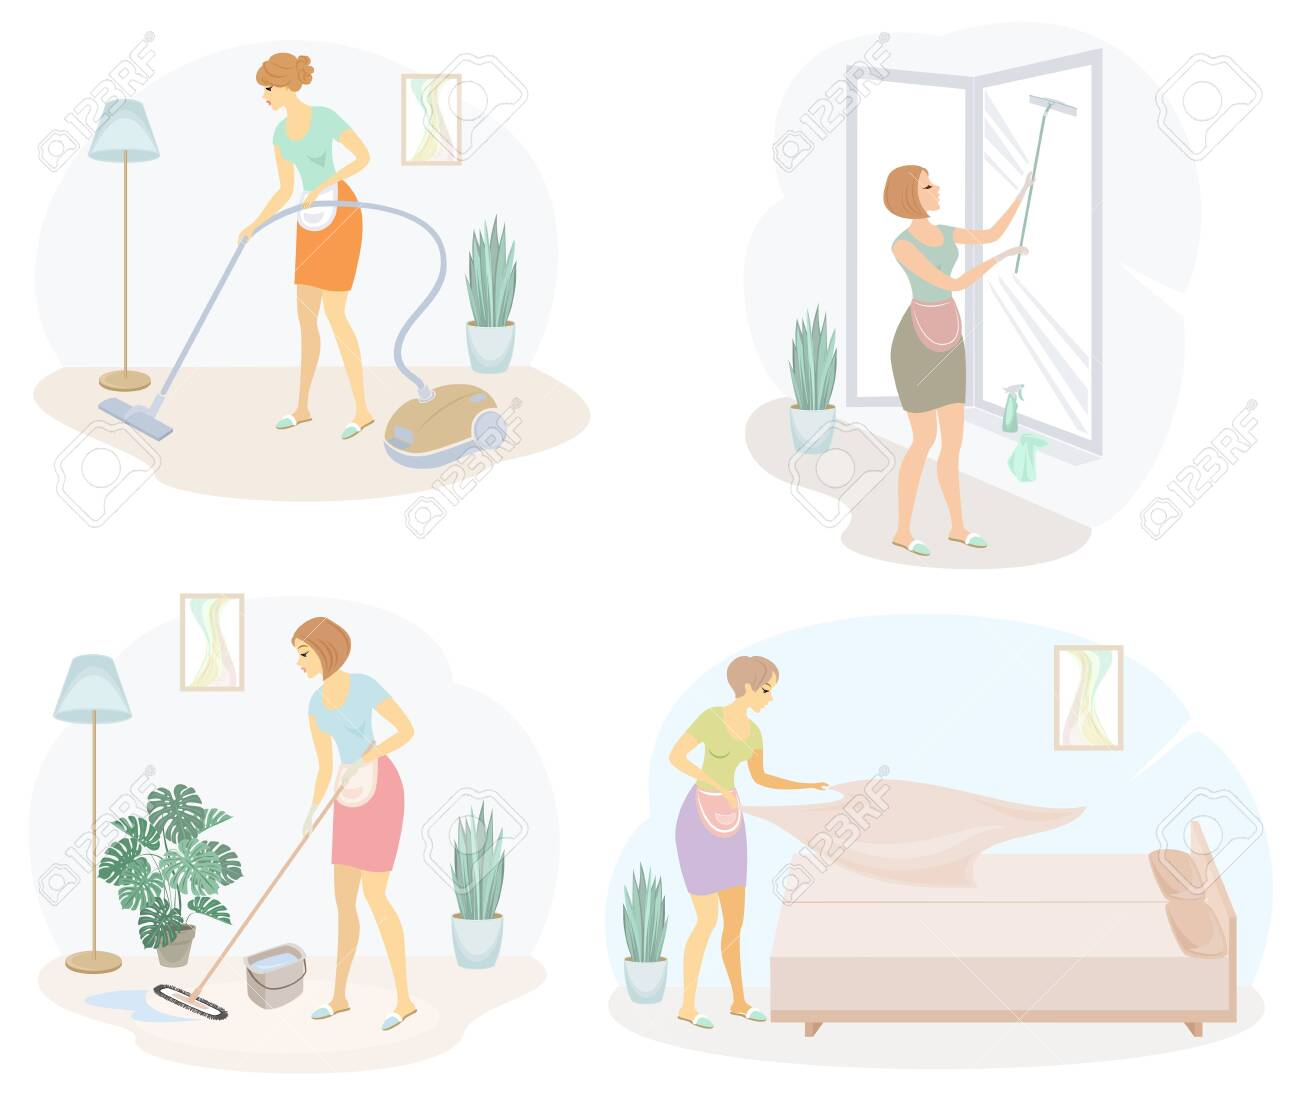 Collection. Profile of a cute lady. The girl cleans, mopping the floor, windows, vacuuming the room, making the bed. The woman is a good wife and a tidy housewife. Vector illustration. - 147986741